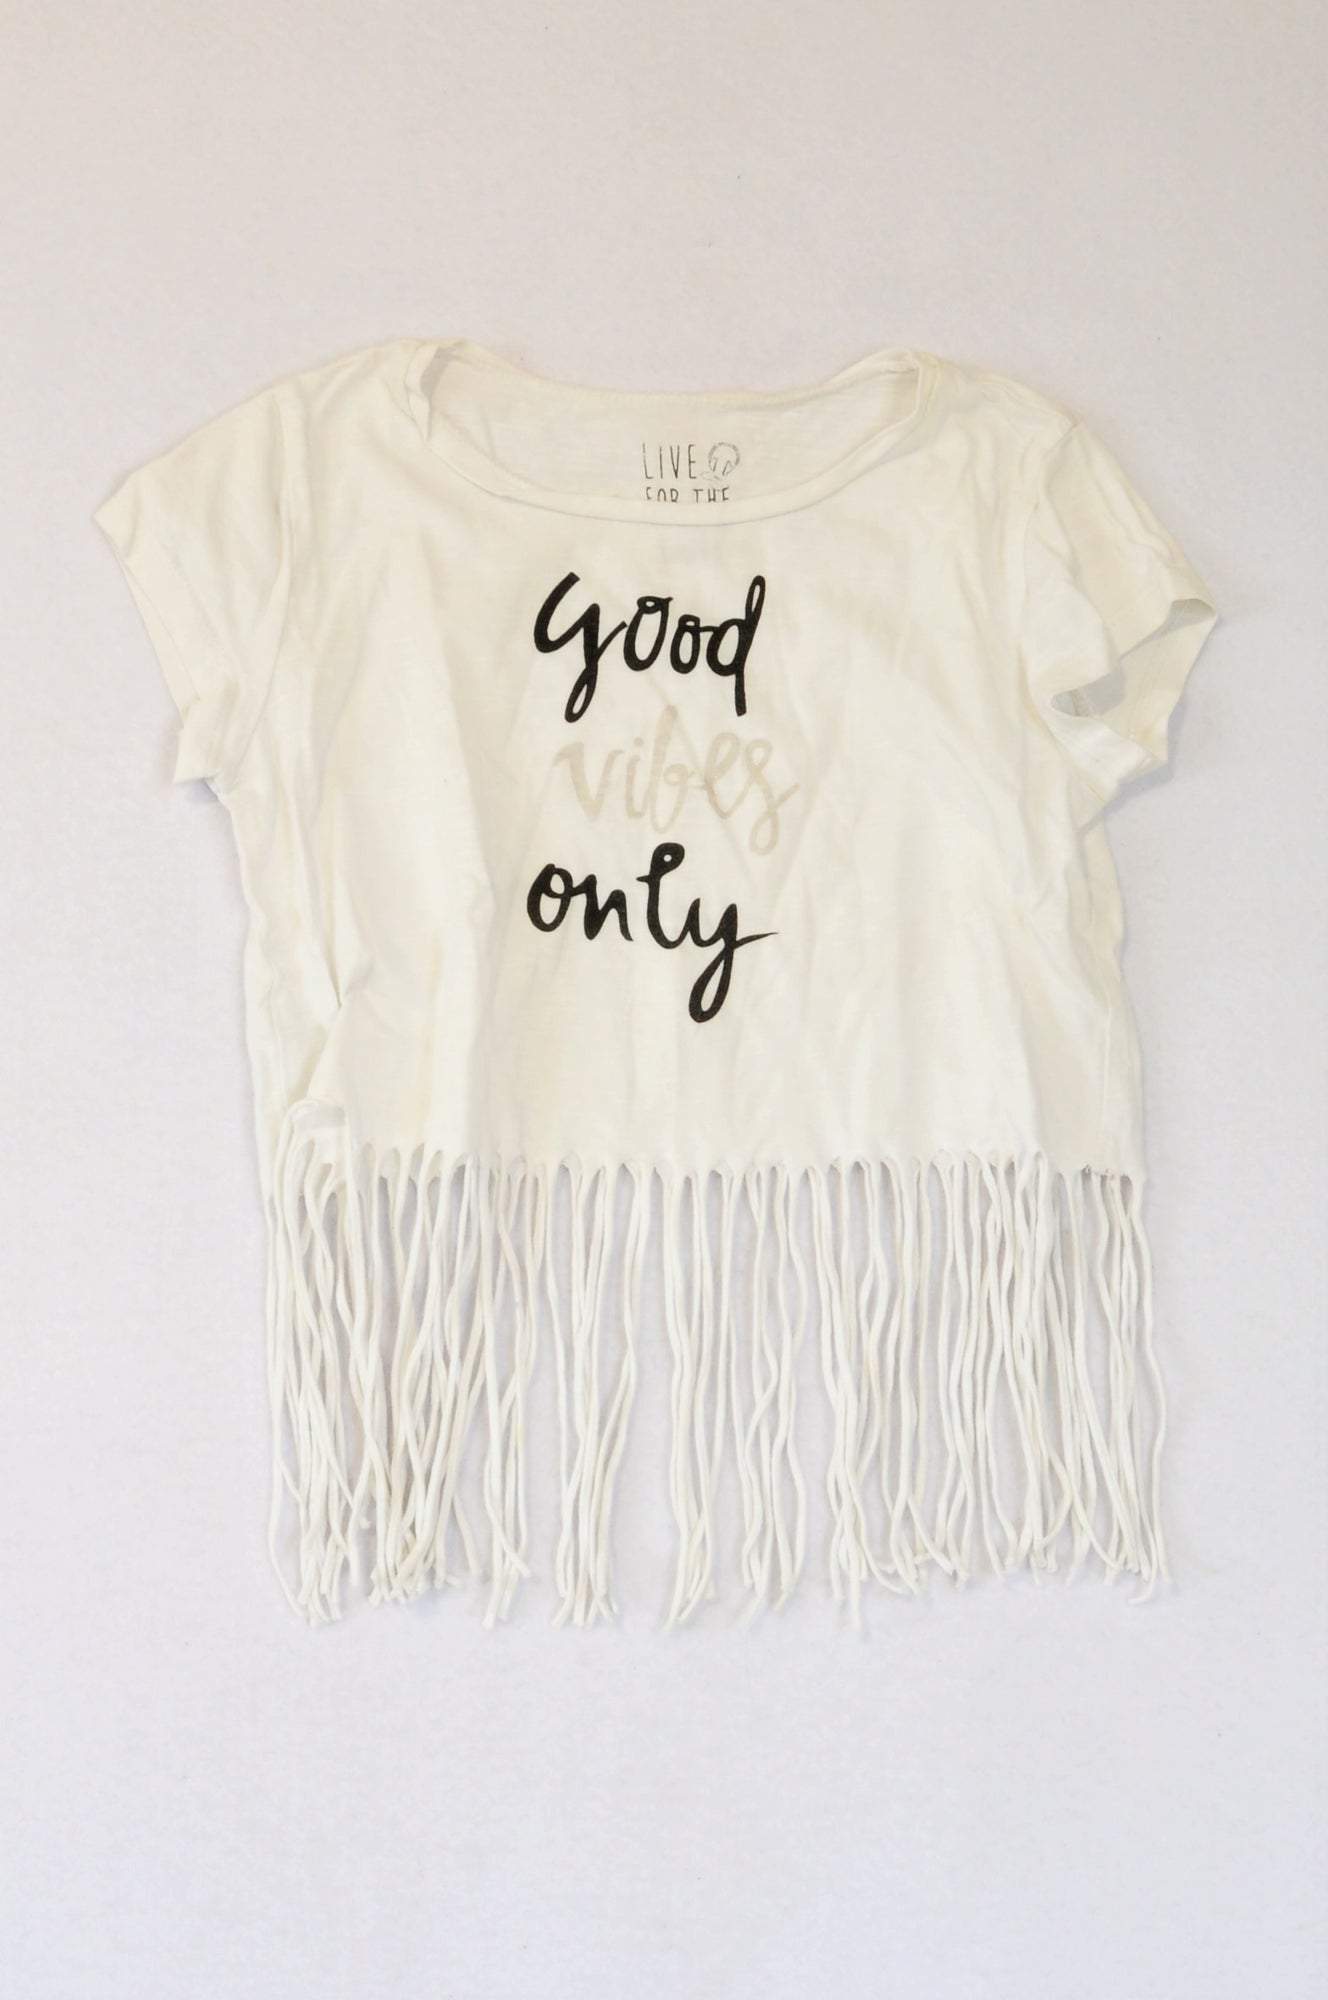 Woolworths White & Black Tassel Good Vibes Only T-shirt Girls 8-9 years